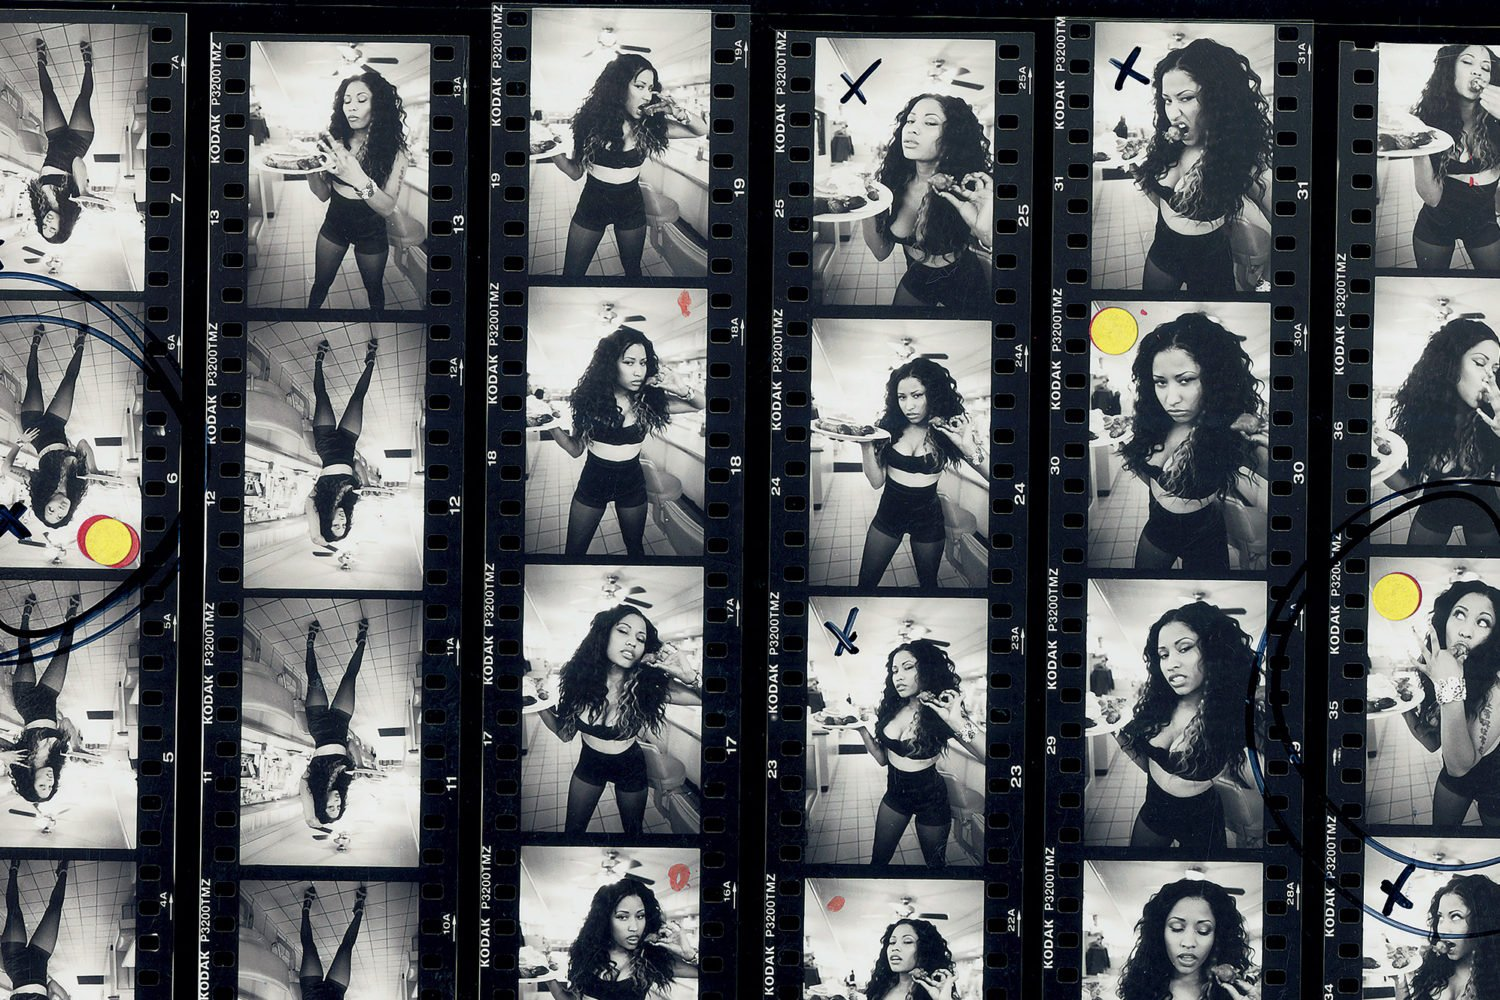 Angela Boatwright's photos of Nicki Minaj, as seen in Tobak's book. Photograph by Angela Boatwright.